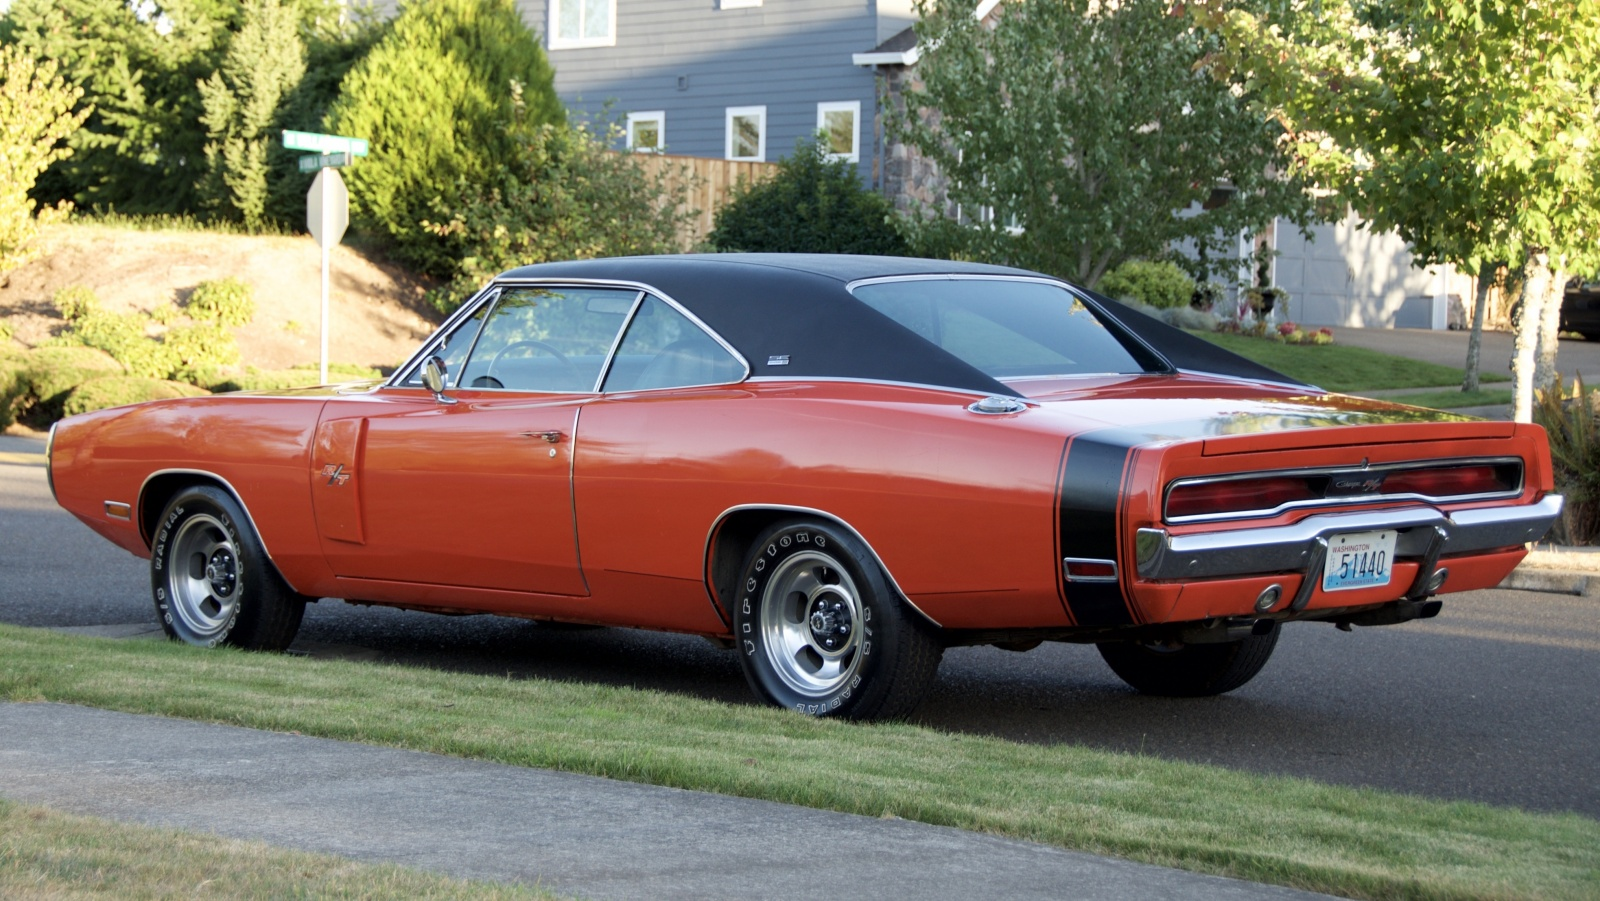 Dodge Charger List >> Amazing Survivor: 1970 Dodge Charger R/T